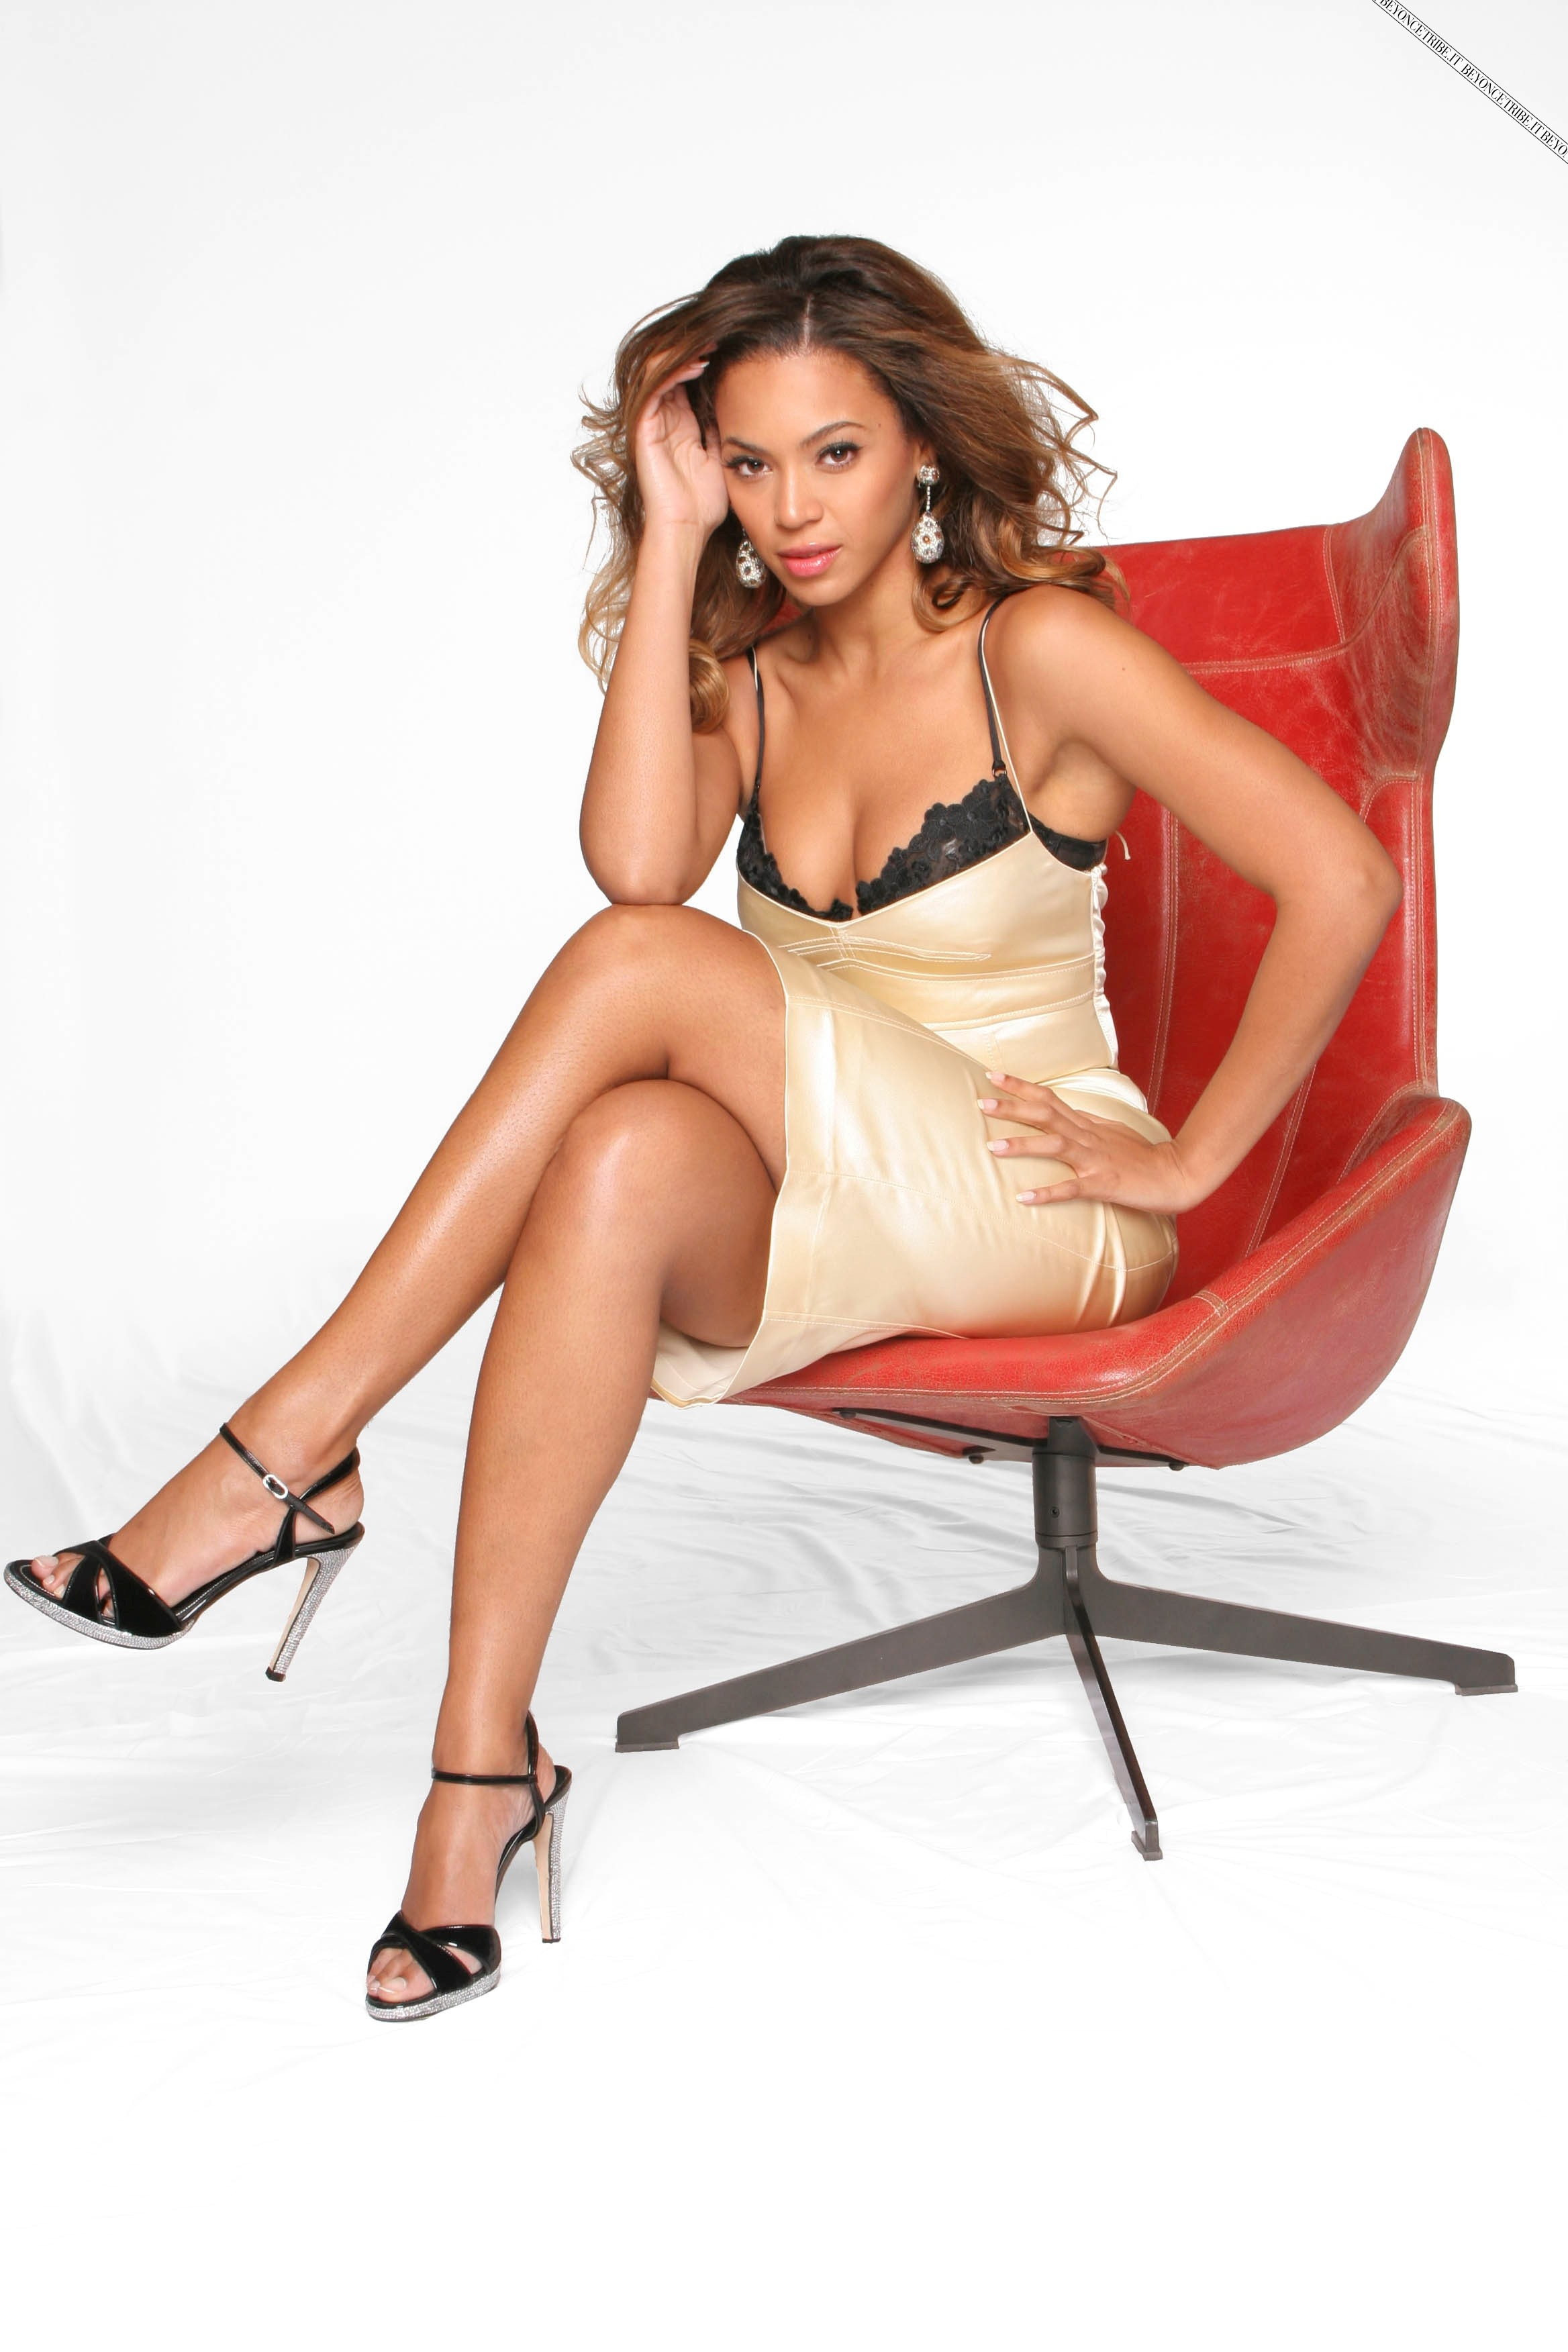 36409_Beyonce_Knowles_Jason_Fraser_Shoot_05_122_219lo